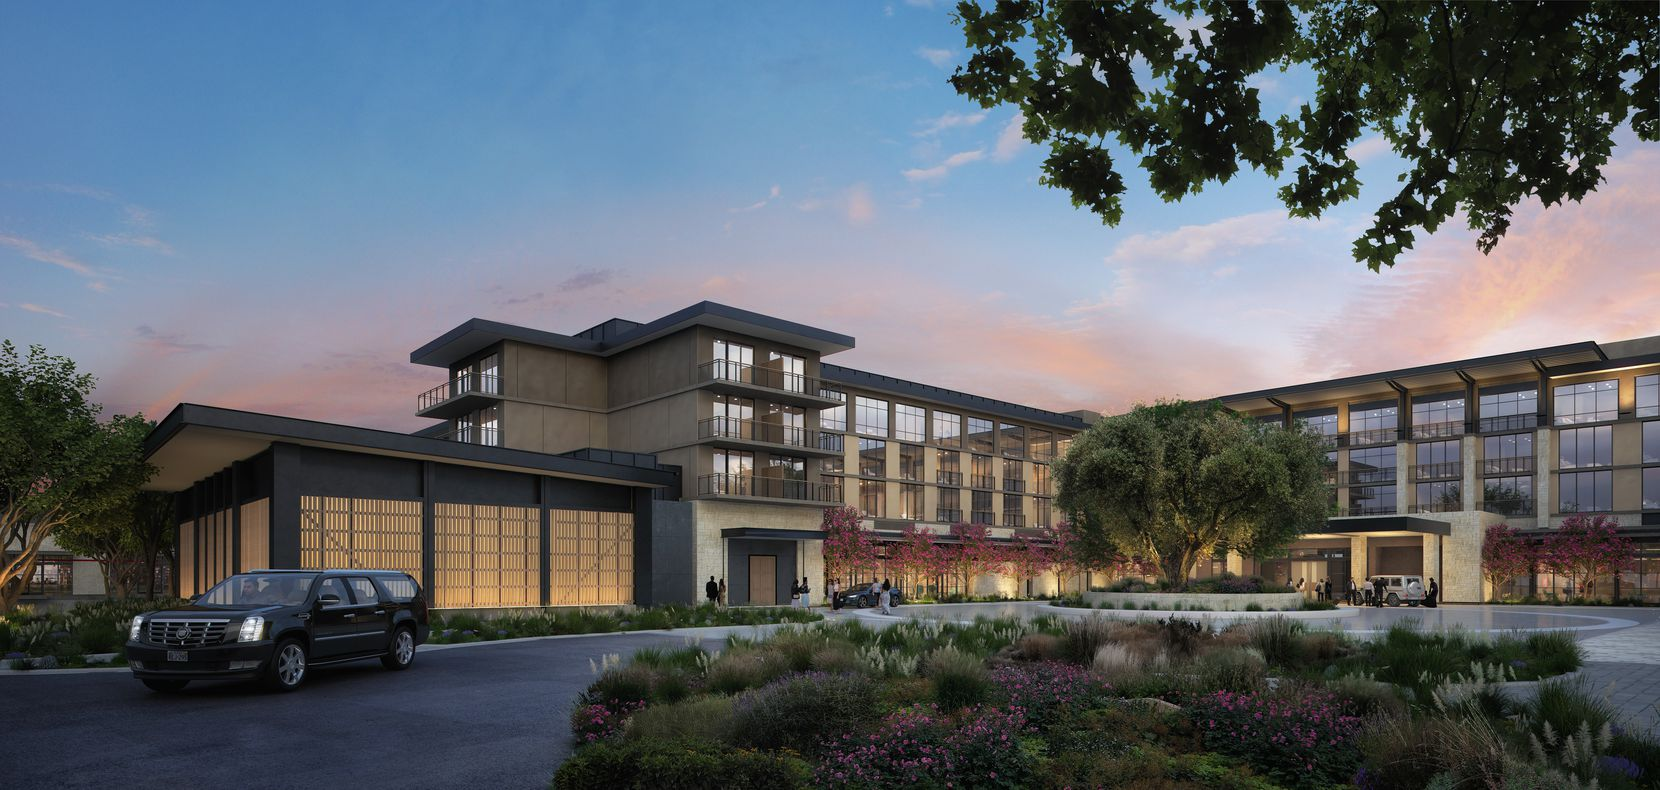 The hotel, conference center and resort is being built as part of the half-billion-dollar PGA of America mixed-use development under construction south of U.S. Highway 380 in Frisco.